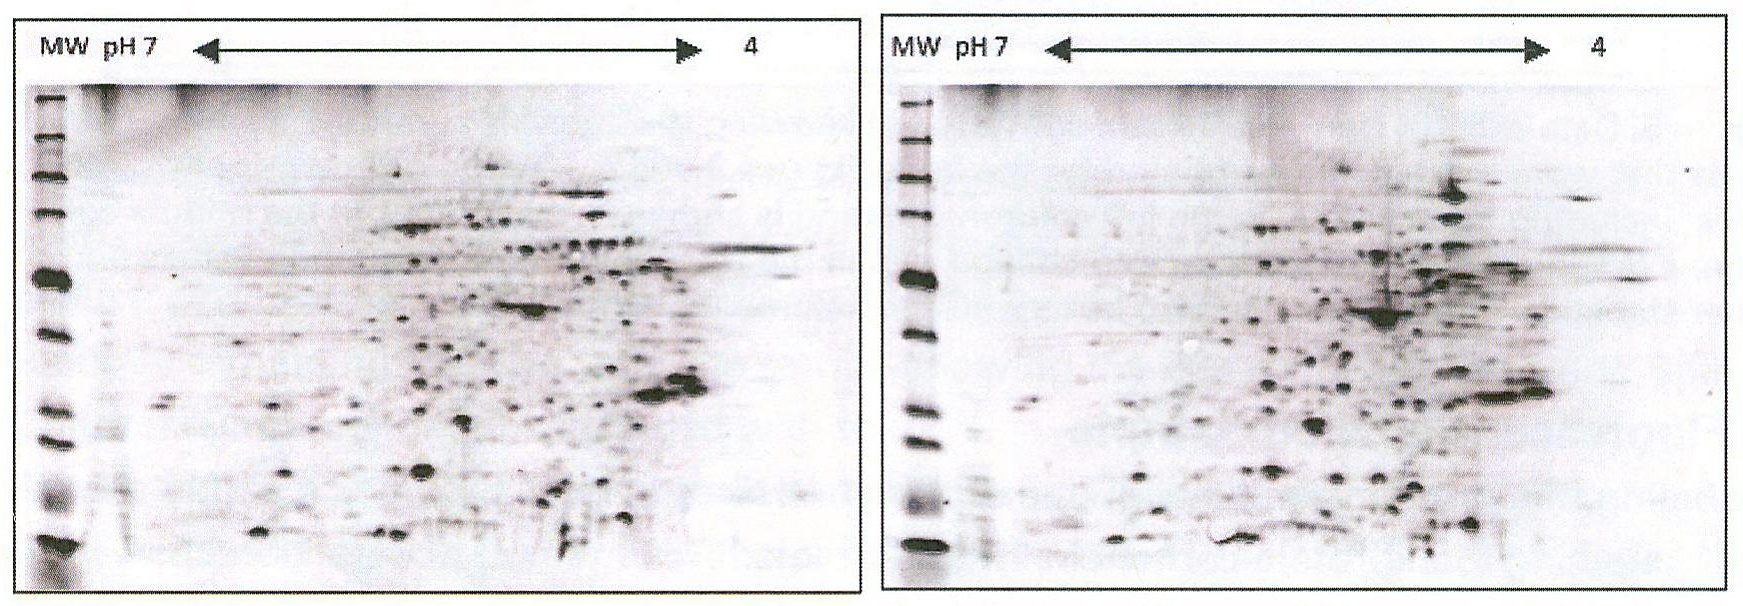 Western Blot Blocking: Tips and Tricks for Blocking Agents